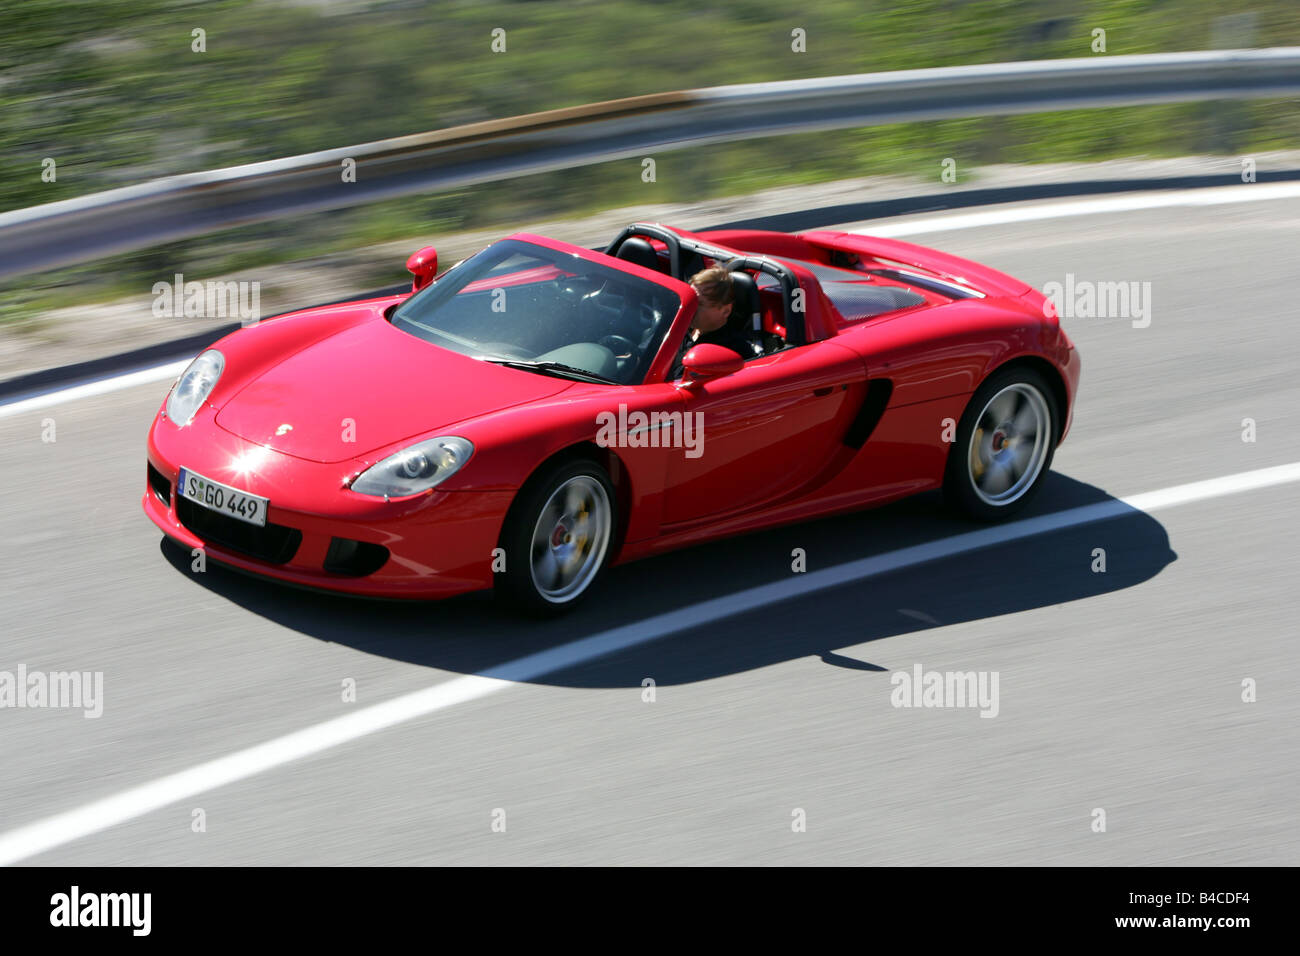 Car, Porsche Carrera GT, Model Year 2005 , Red, Convertible, Open Top,  Driving, Diagonal From The Front, Side View, Country Road